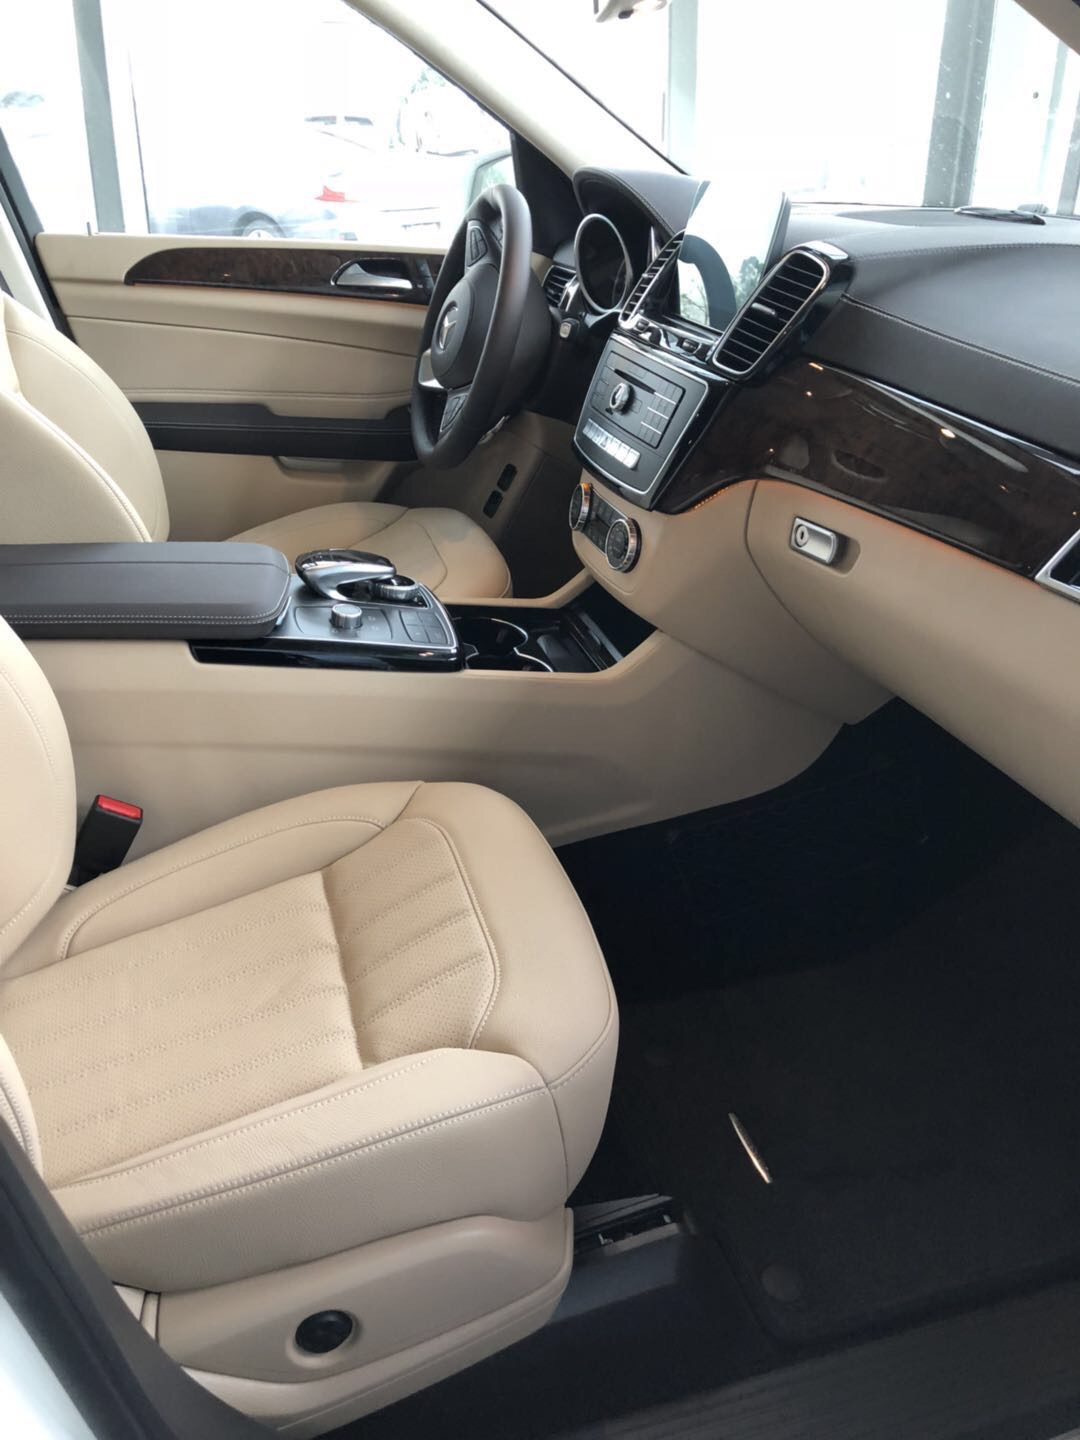 Import/Export 2018 Mercedes-Benz GLS450